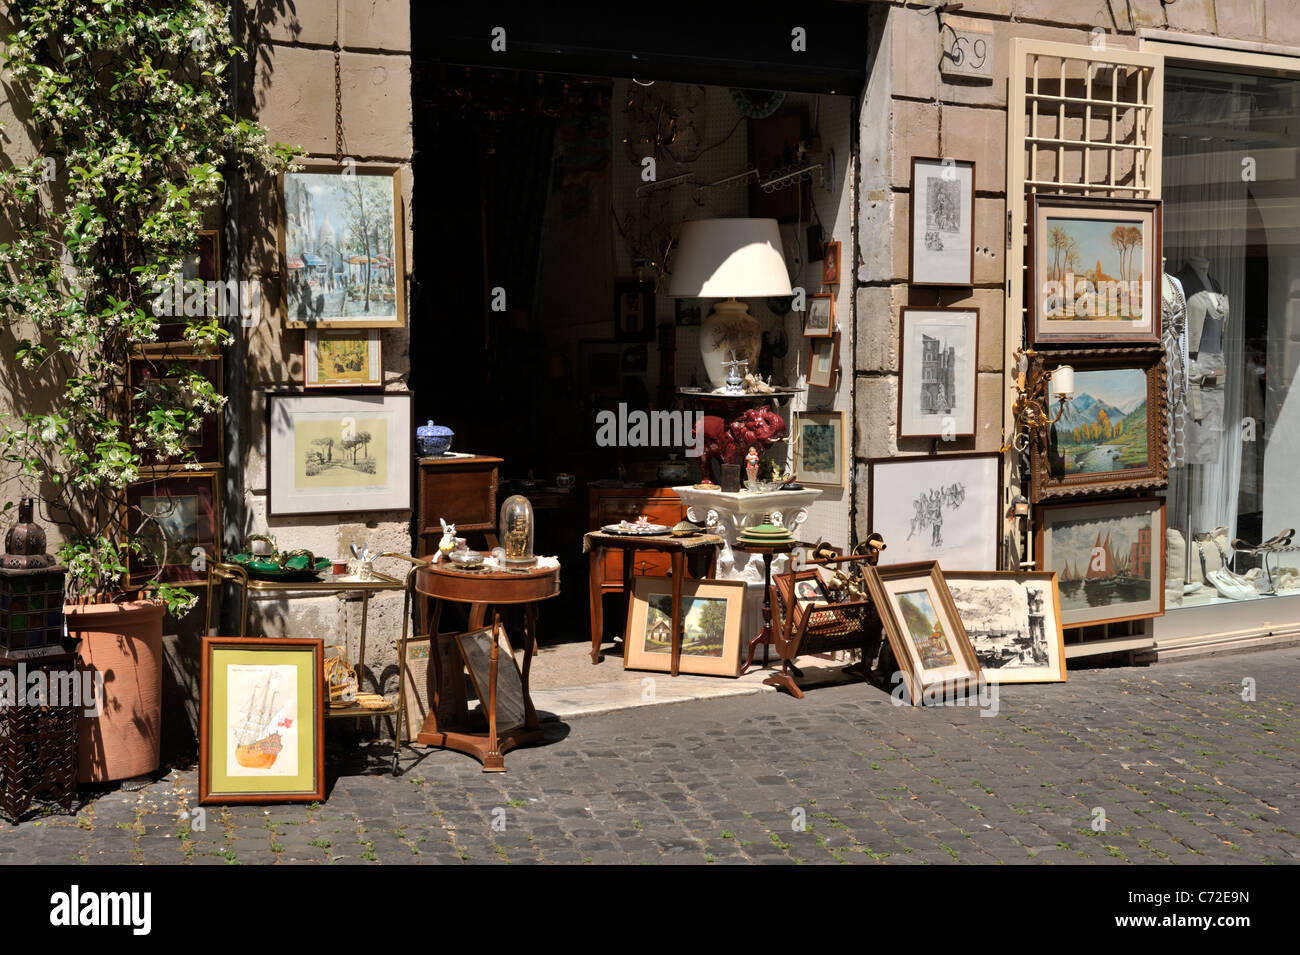 italy, rome, historic centre, antique shop - Stock Image